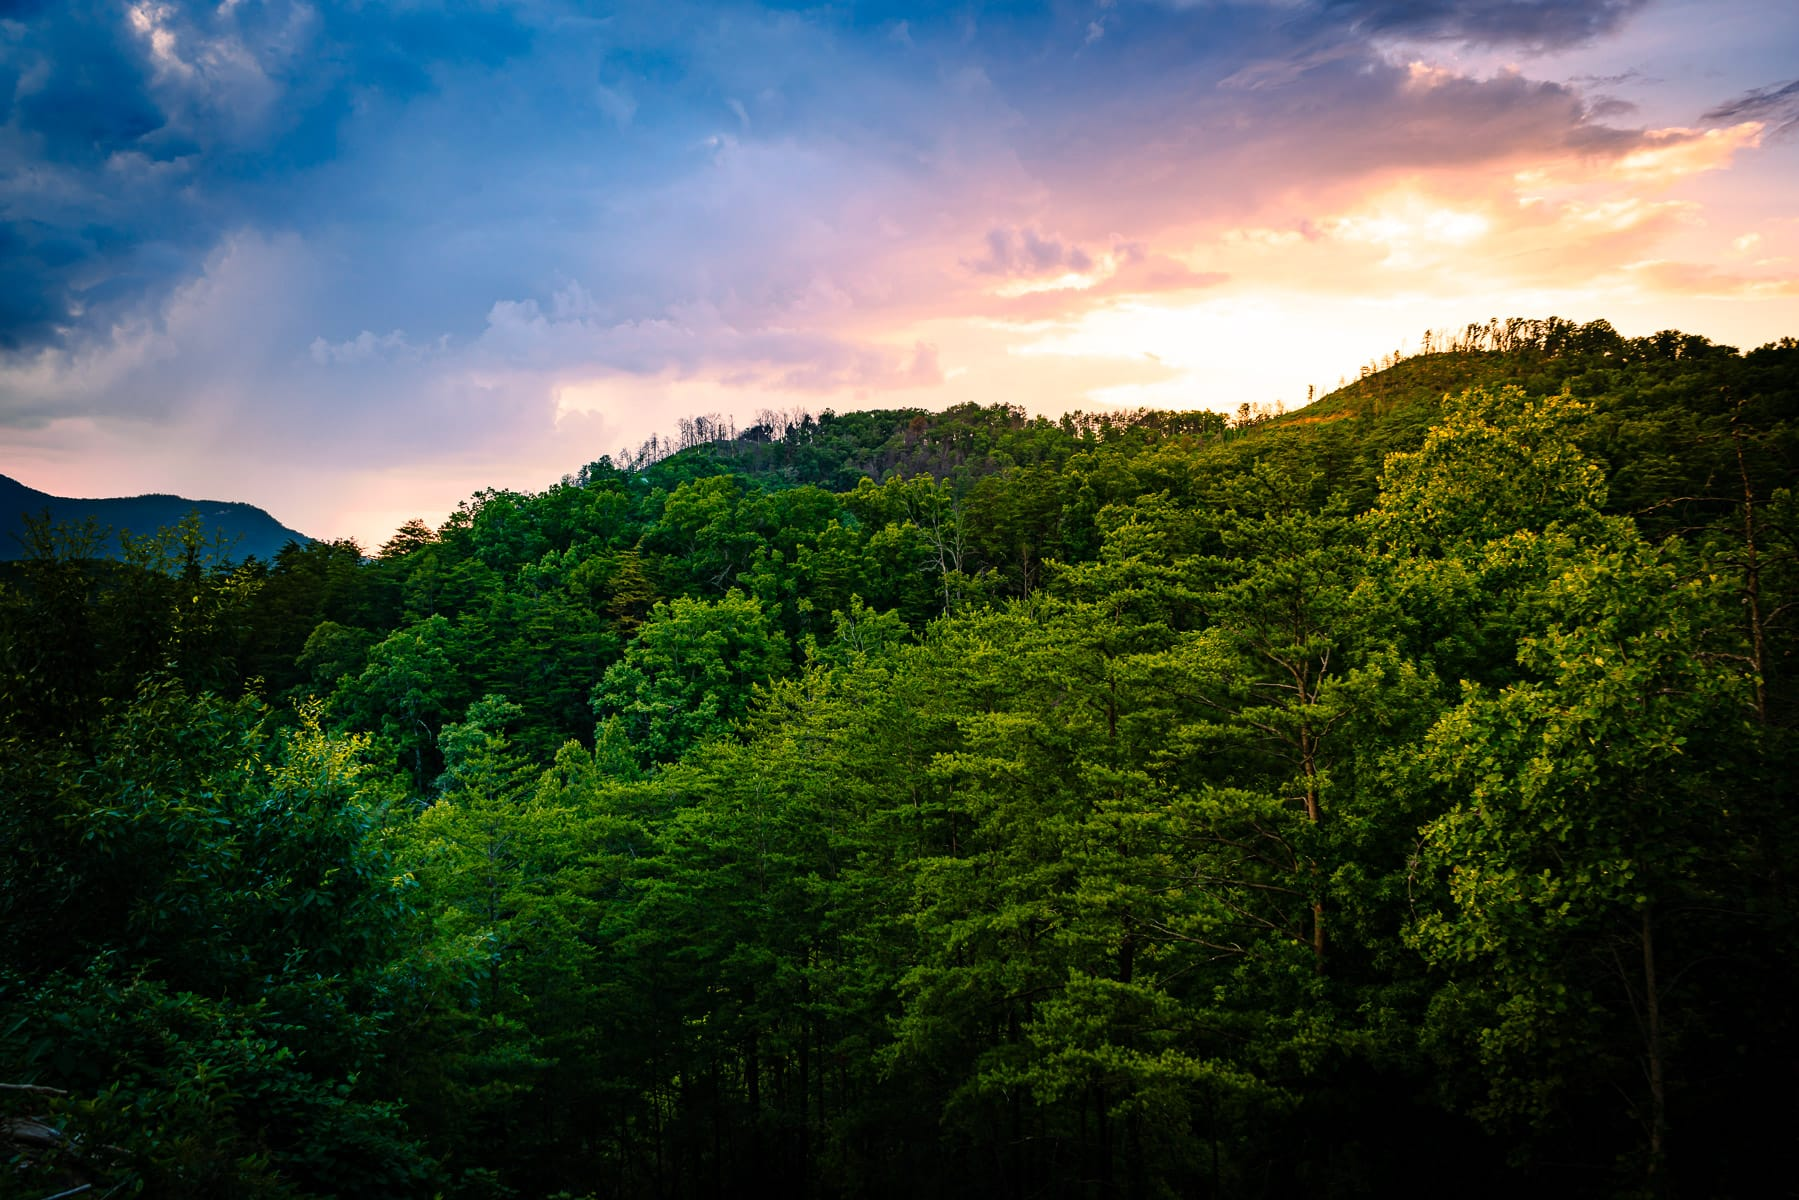 The sun sets on the Great Smoky Mountains, Tennessee.